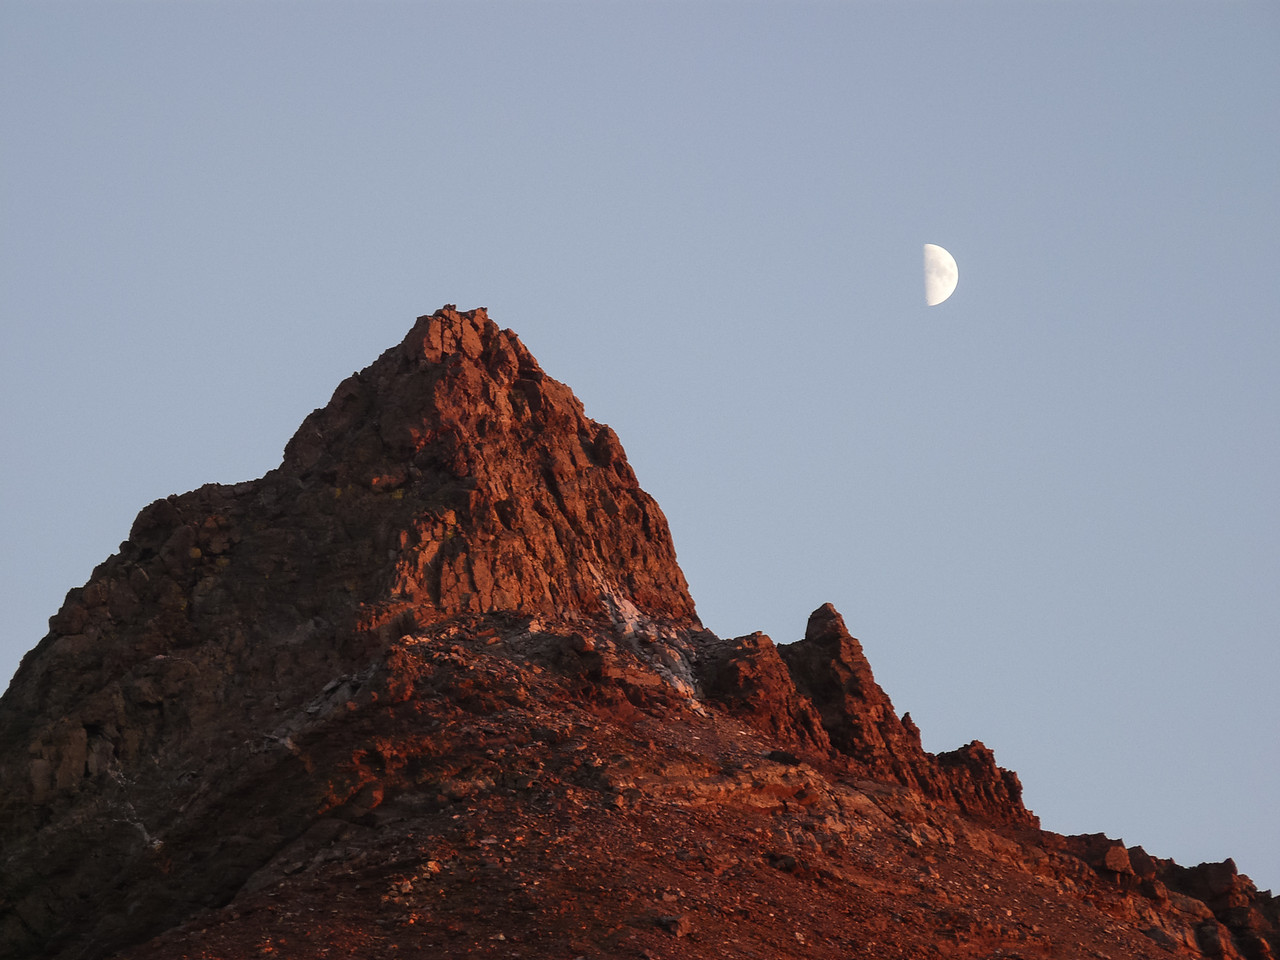 Mineral Peak and a first quarter moon.